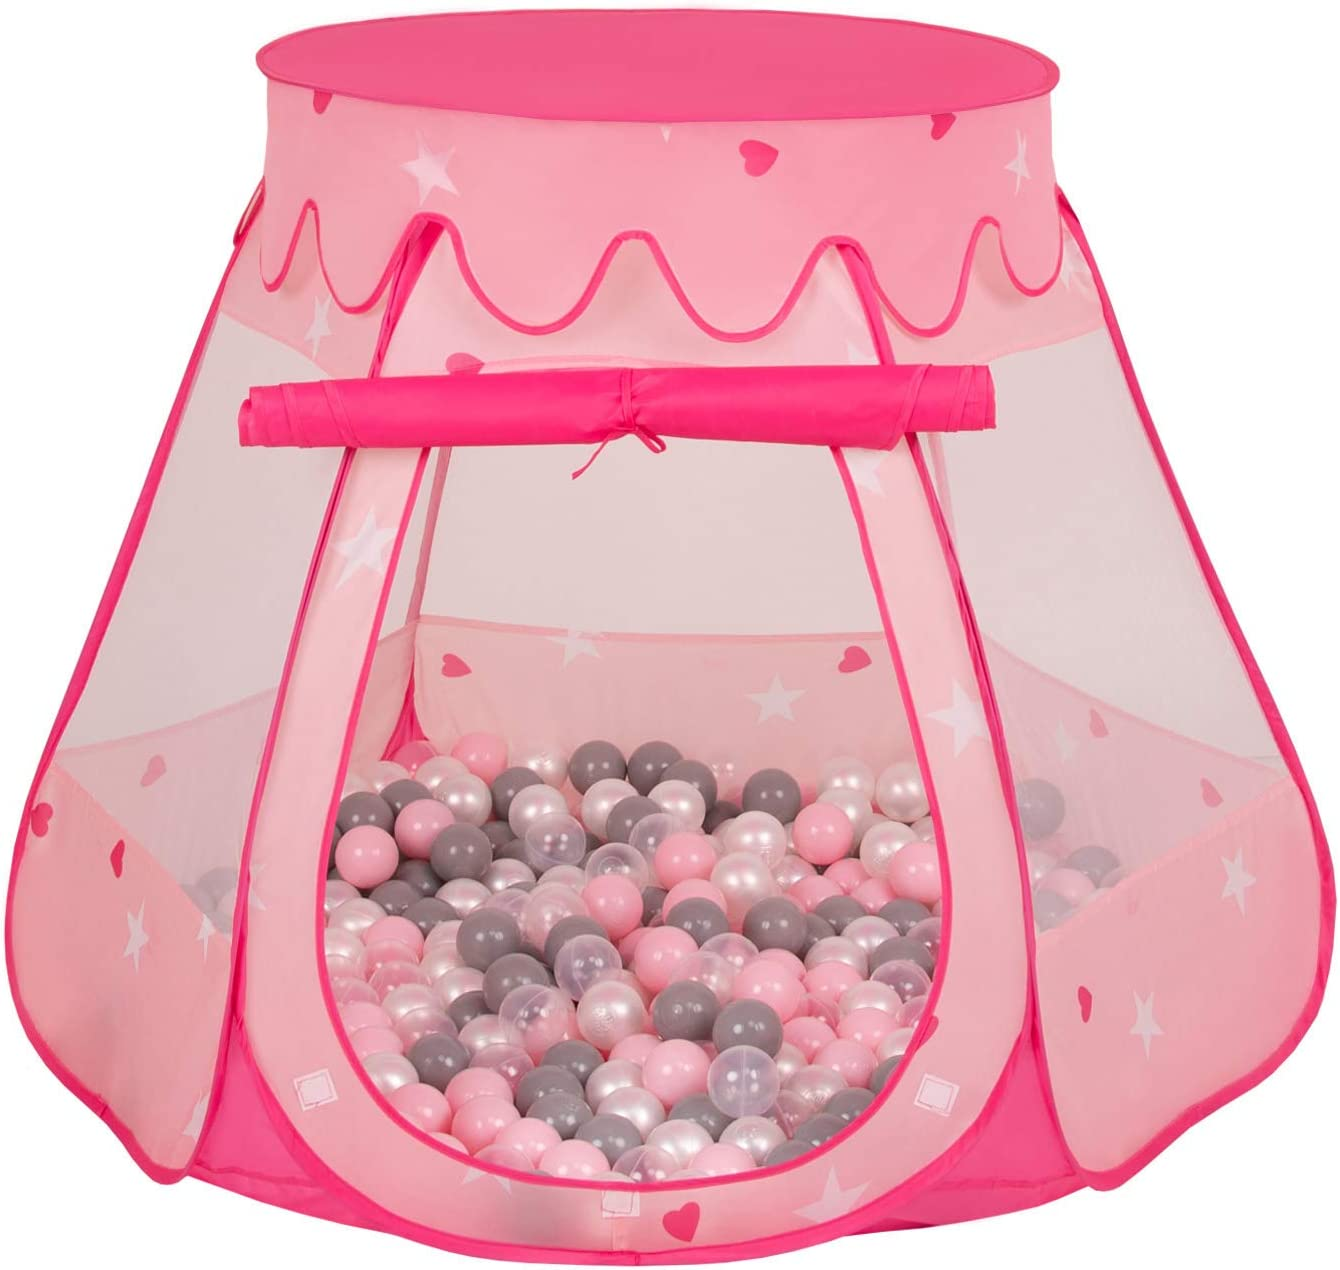 Pink:Pearl//Grey//Pink Selonis Play Tent 105X90cm//100 Balls Castle House Pop Up Ballpit Plastic Balls for Kids